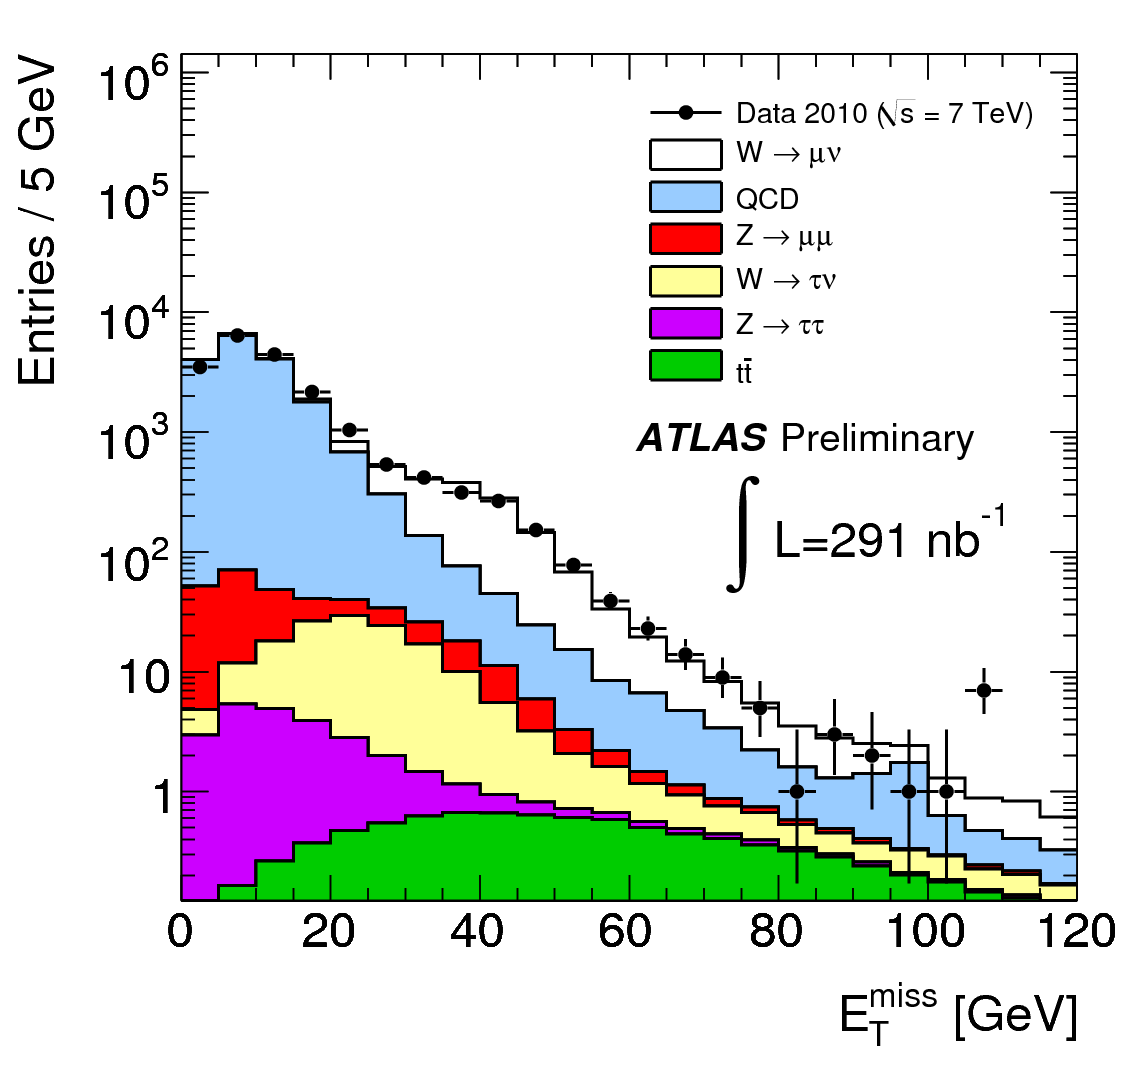 https://atlas.web.cern.ch/Atlas/GROUPS/PHYSICS/FastPerformancePlots/W/fig_01b.png